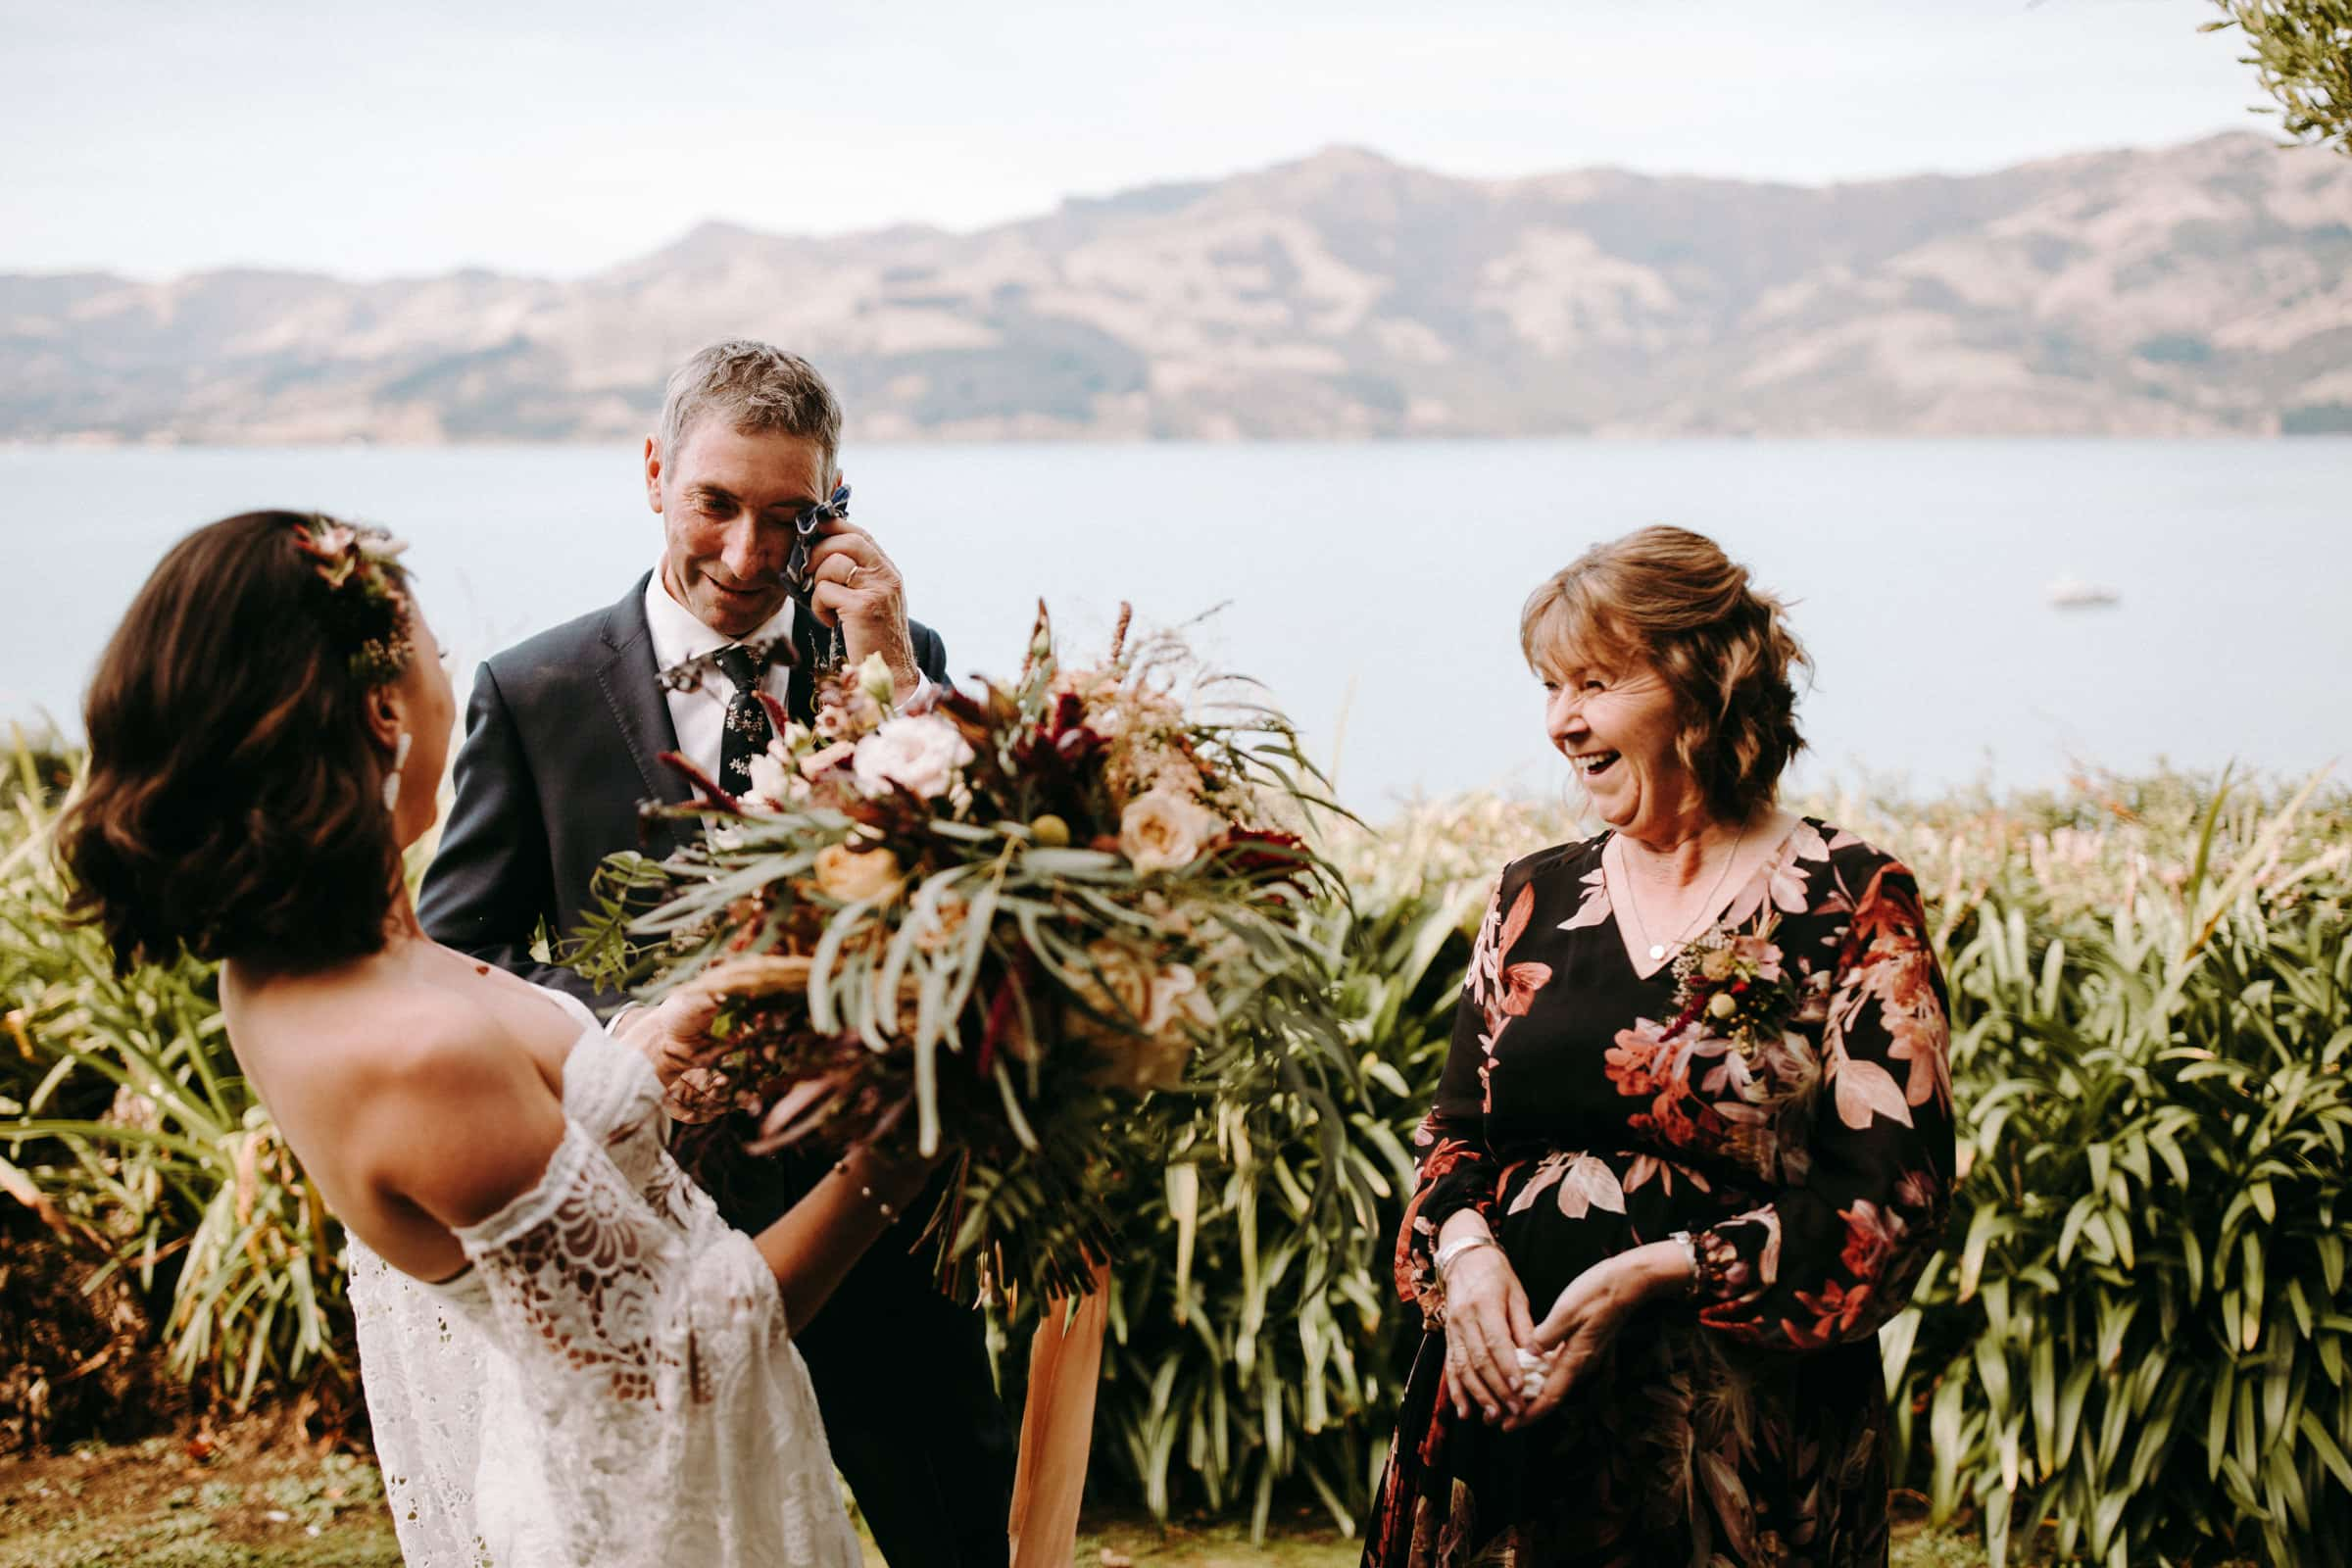 A bride and her parents are standing together and are smiling.